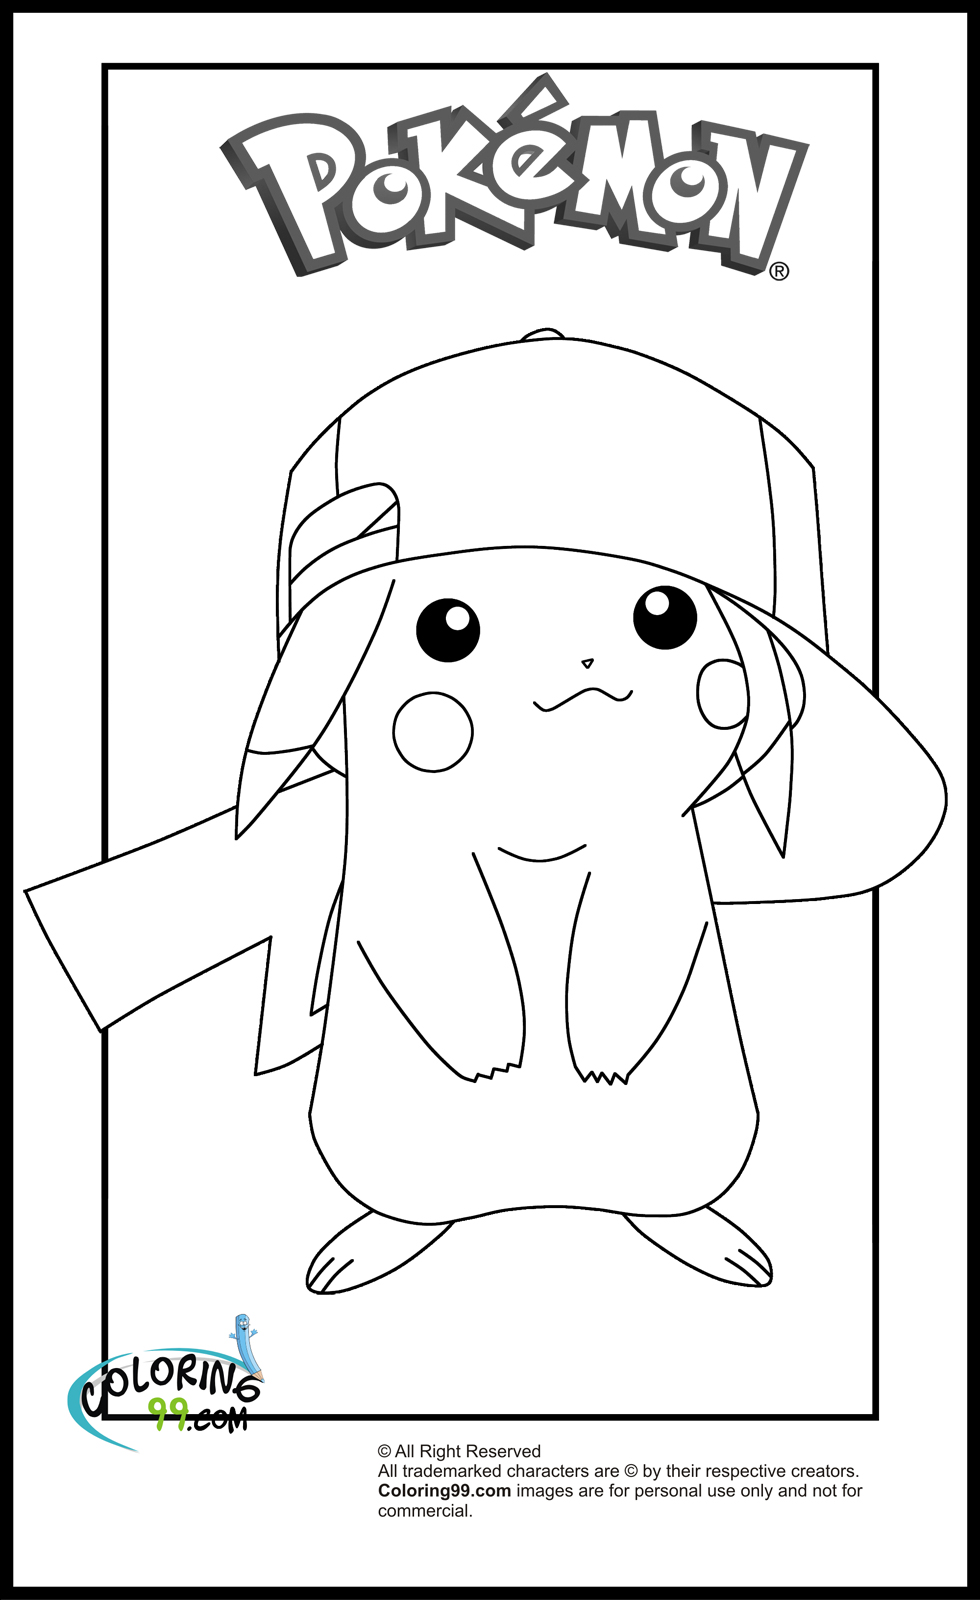 pikachu coloring pages ash and pikachu coloring pages pokemon spiderman dibujo pages coloring pikachu